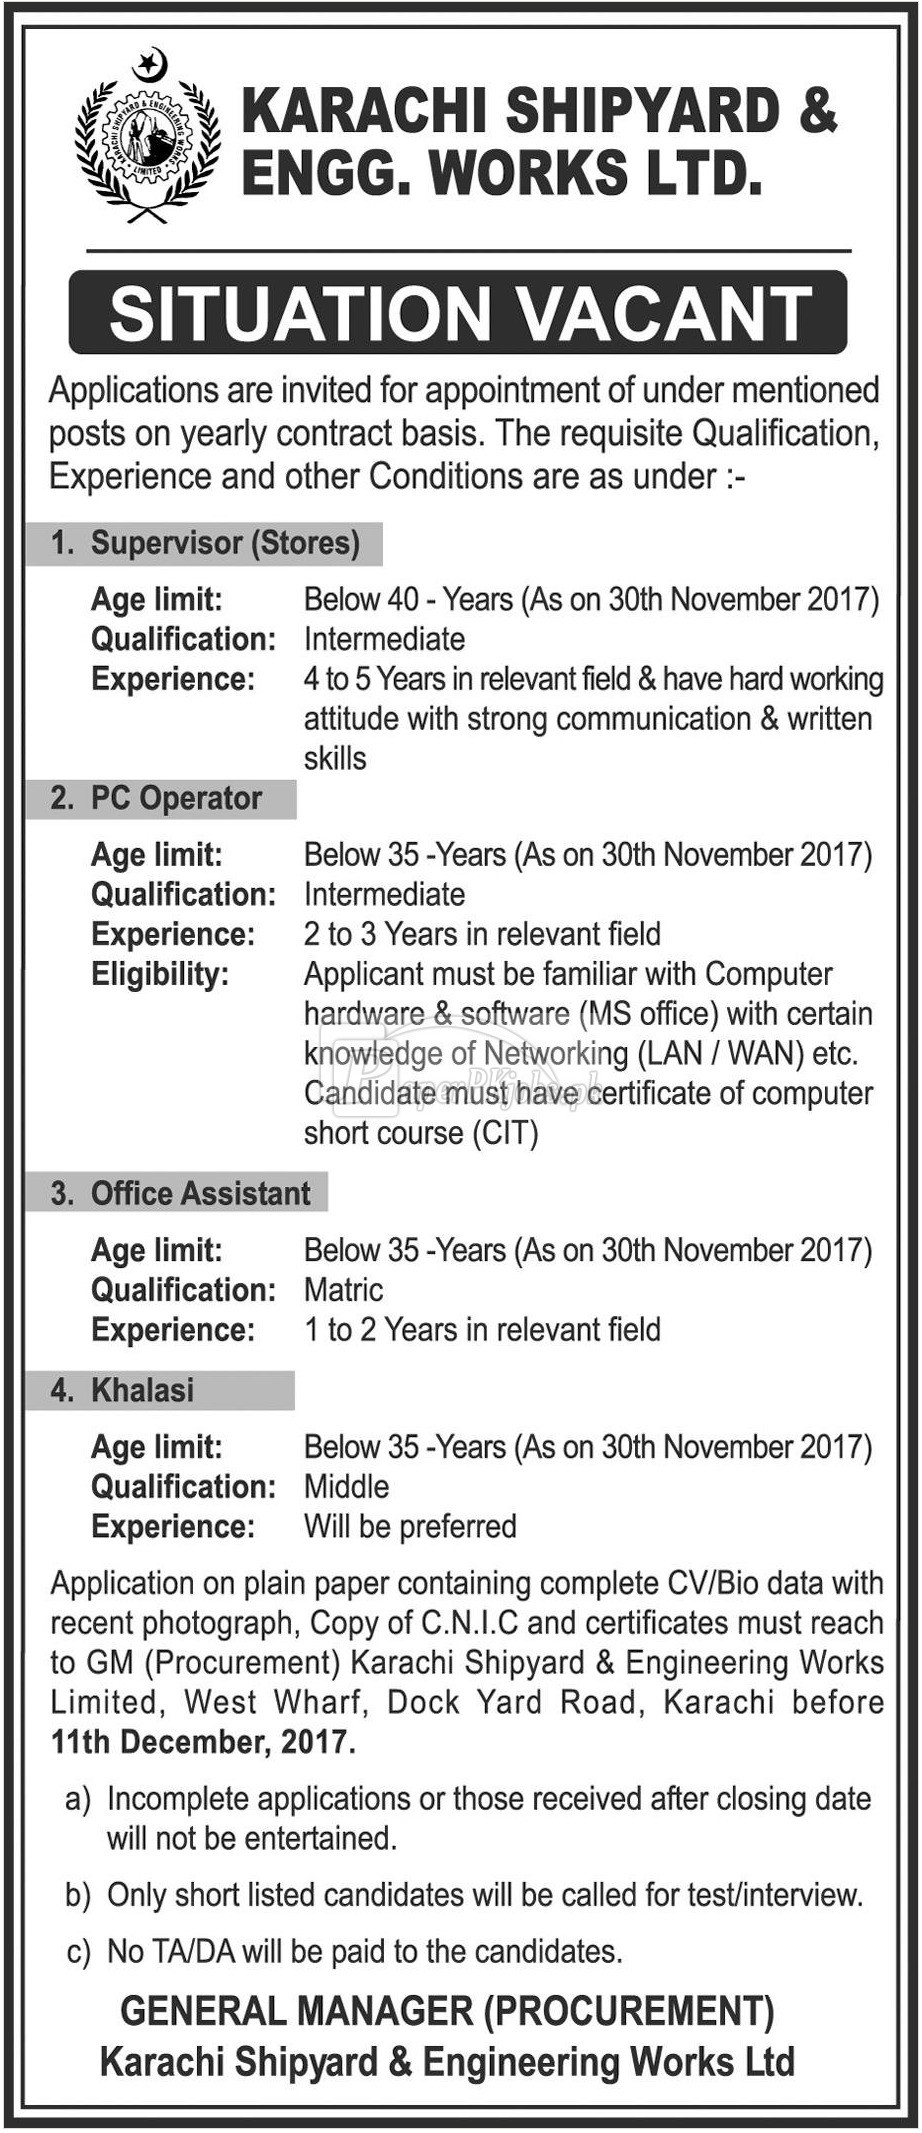 Karachi Shipyard & Engineering Works Ltd Jobs 2017Karachi Shipyard & Engineering Works Ltd Jobs 2017